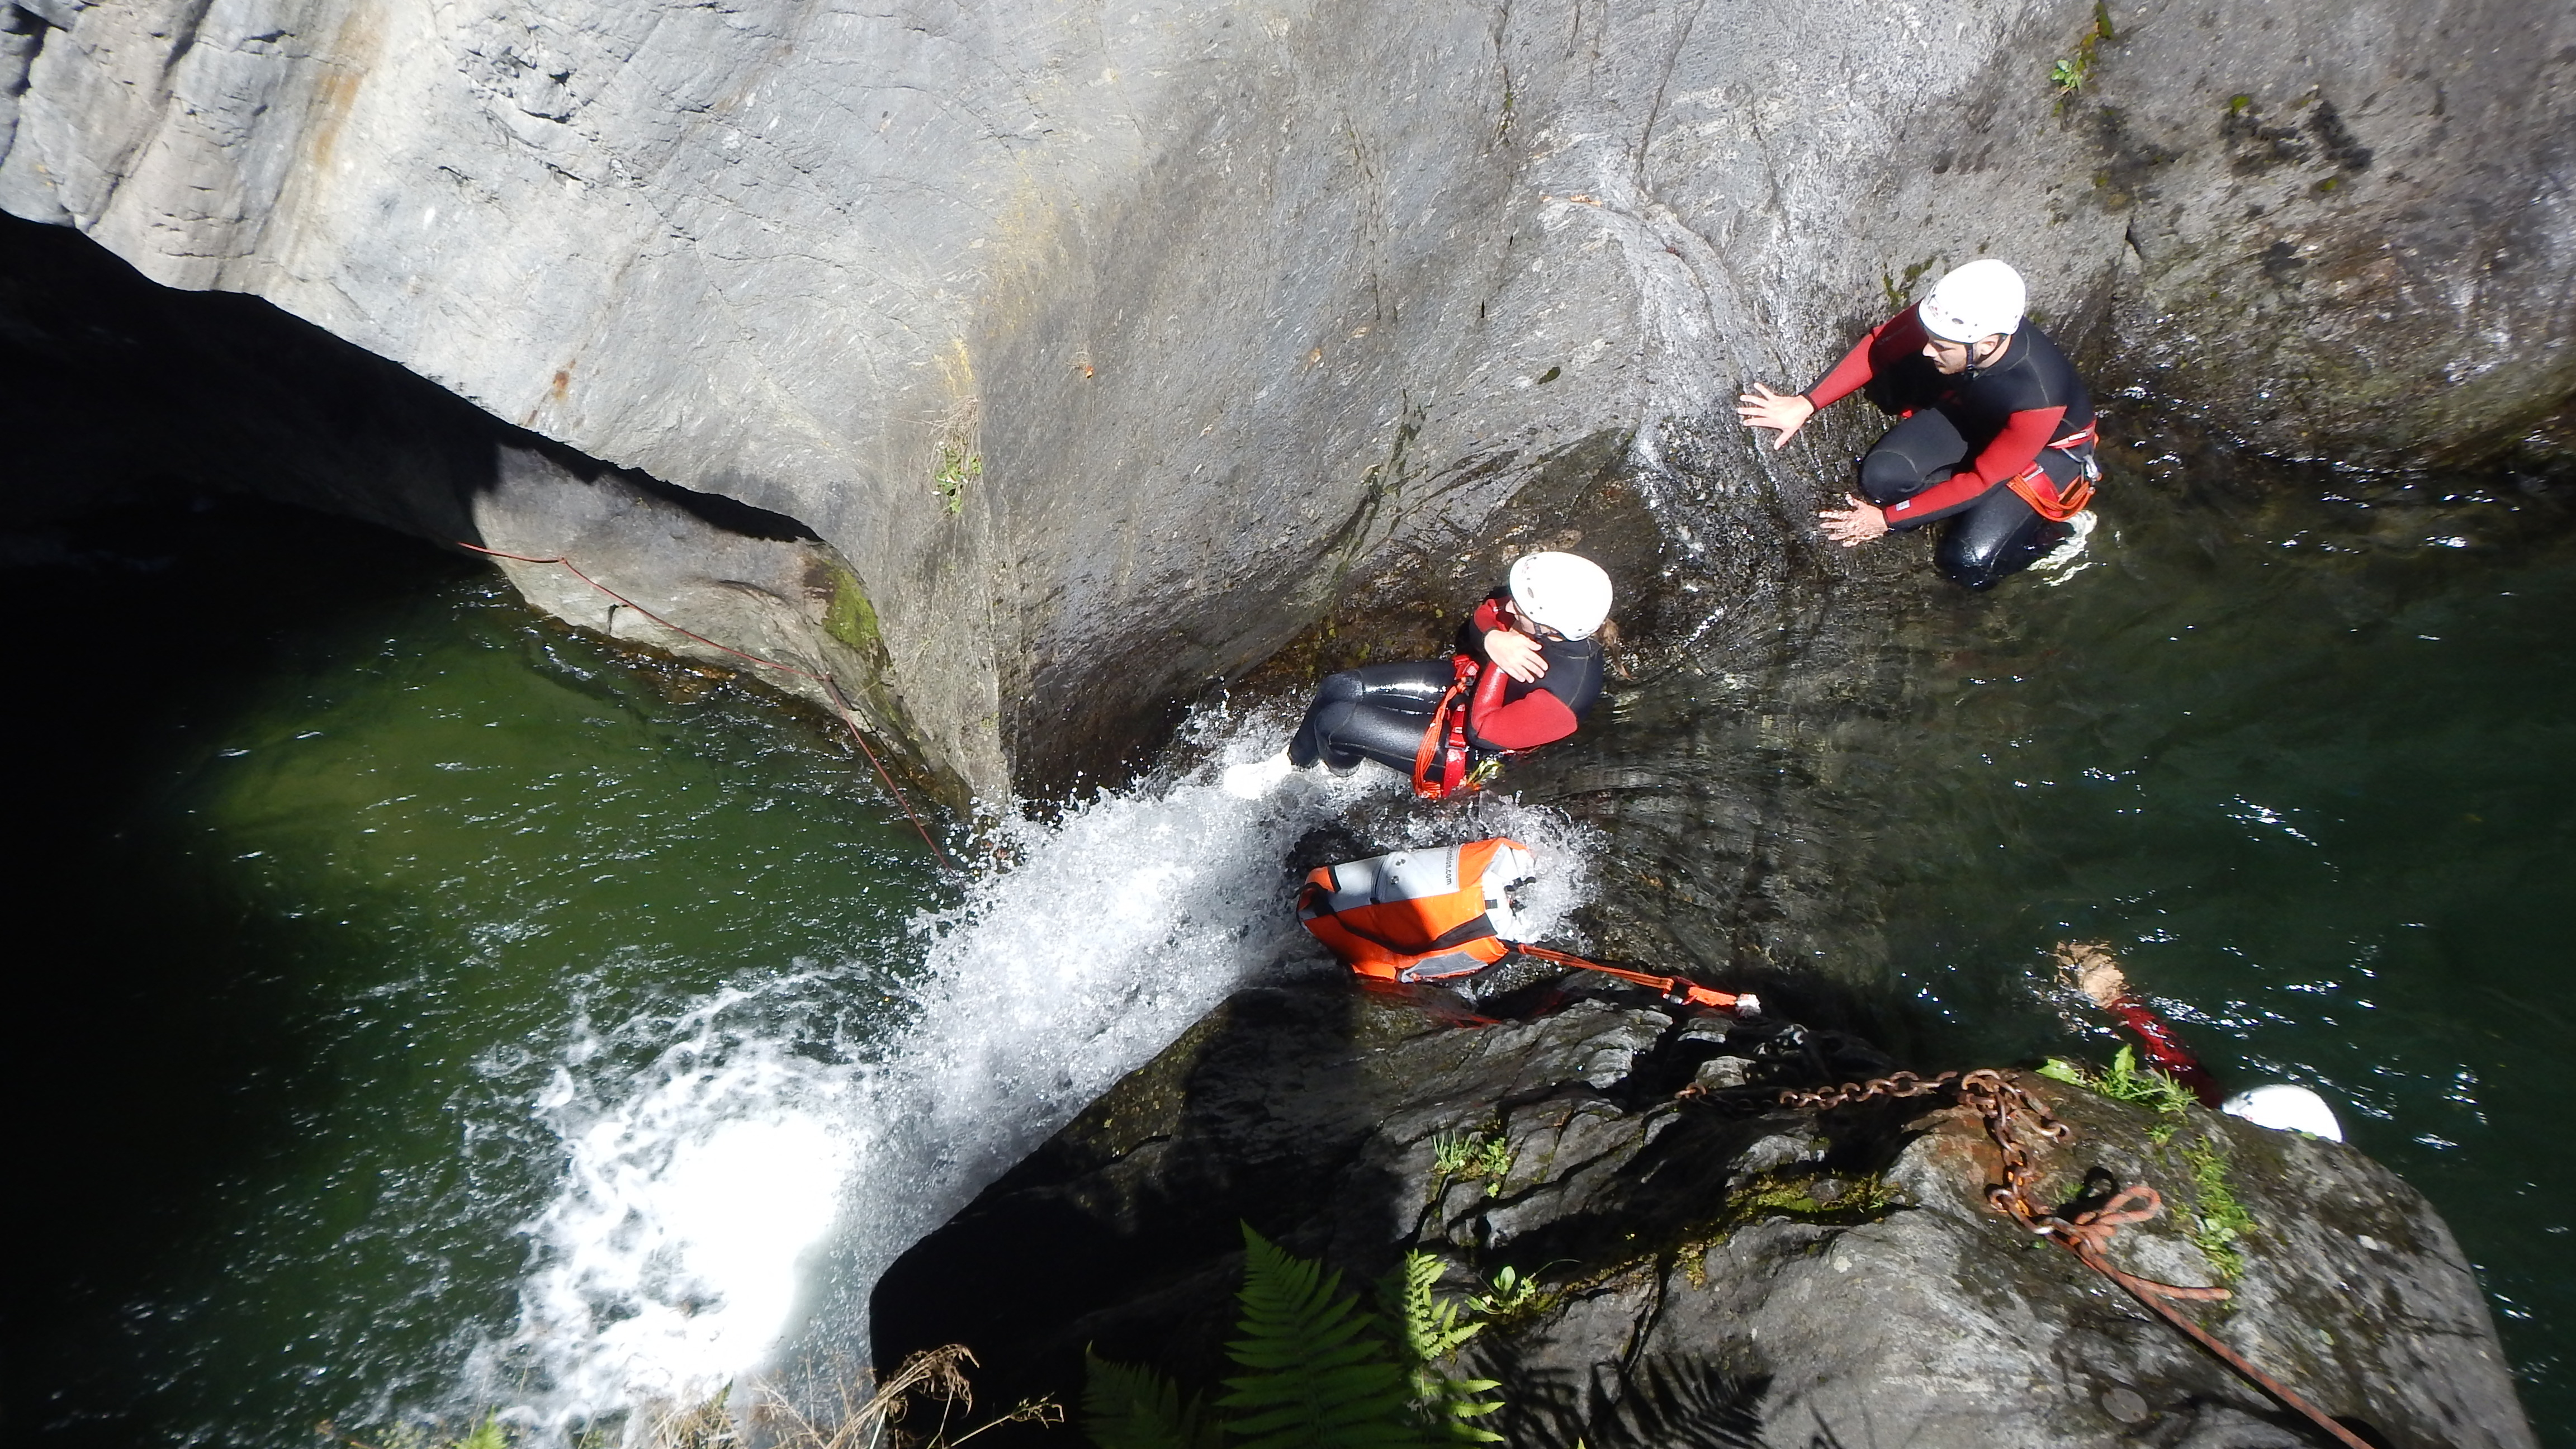 Canyoning – dipping